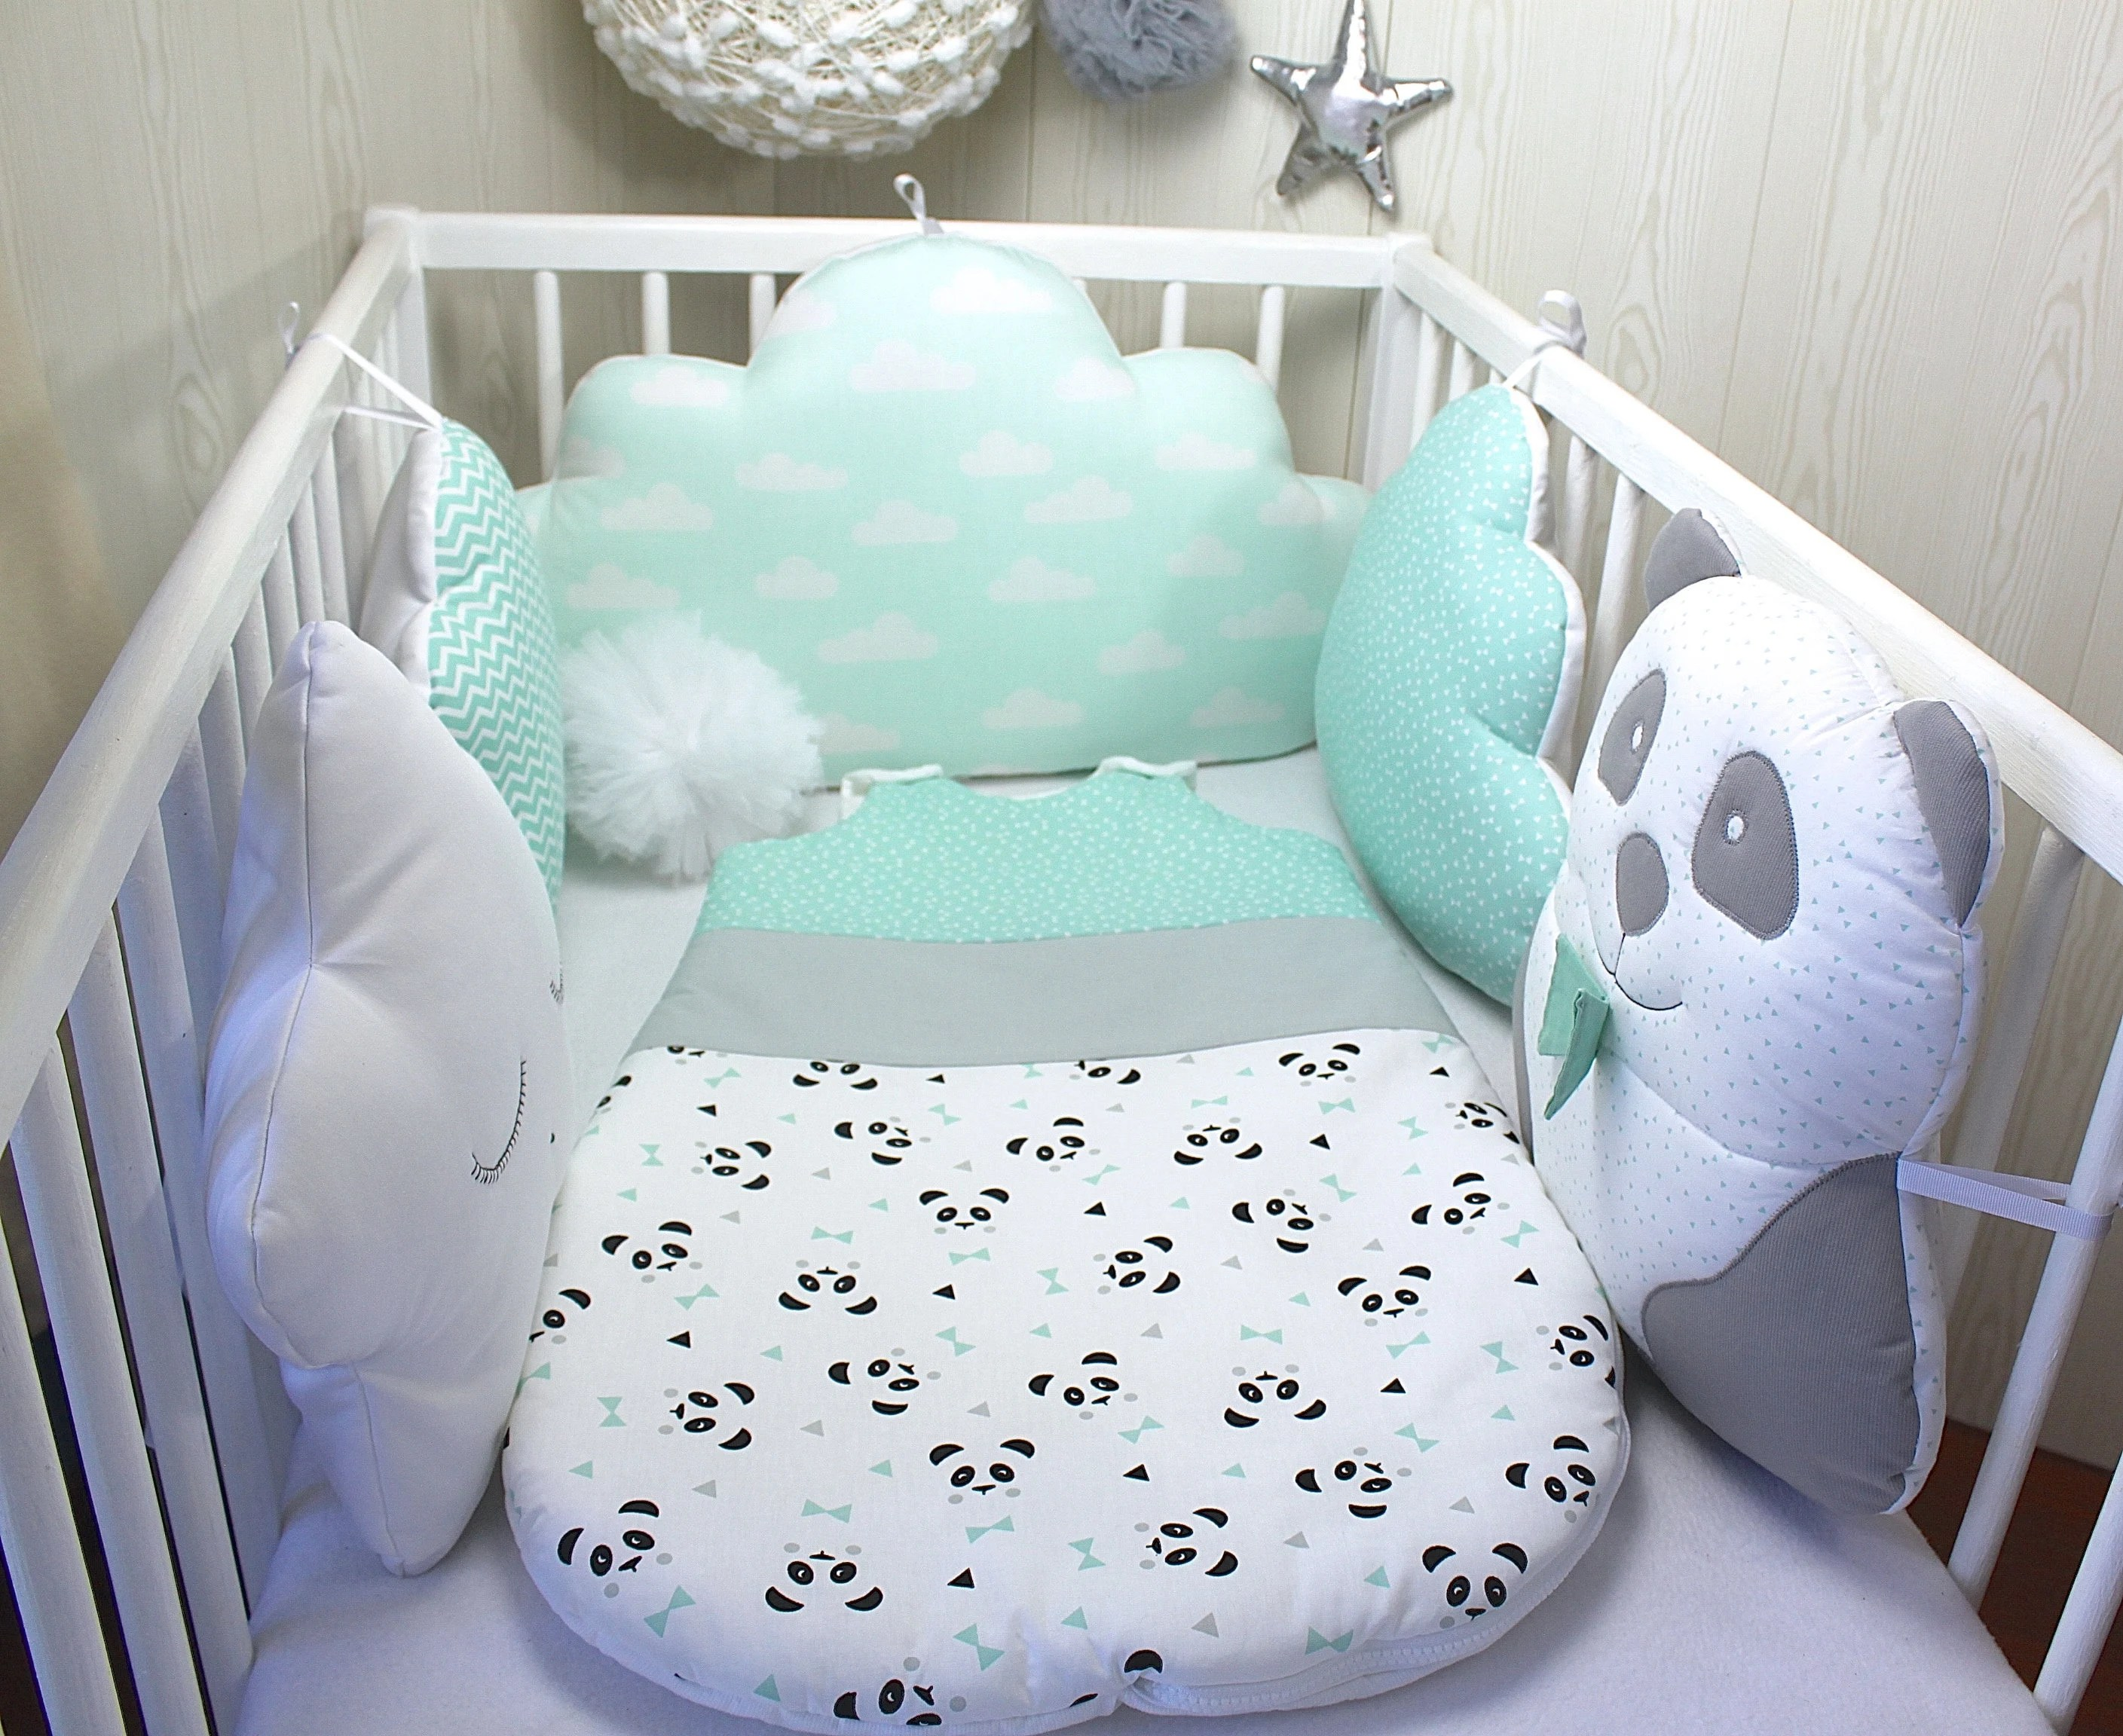 circumference of baby panda cloud and star green water bed white and gray